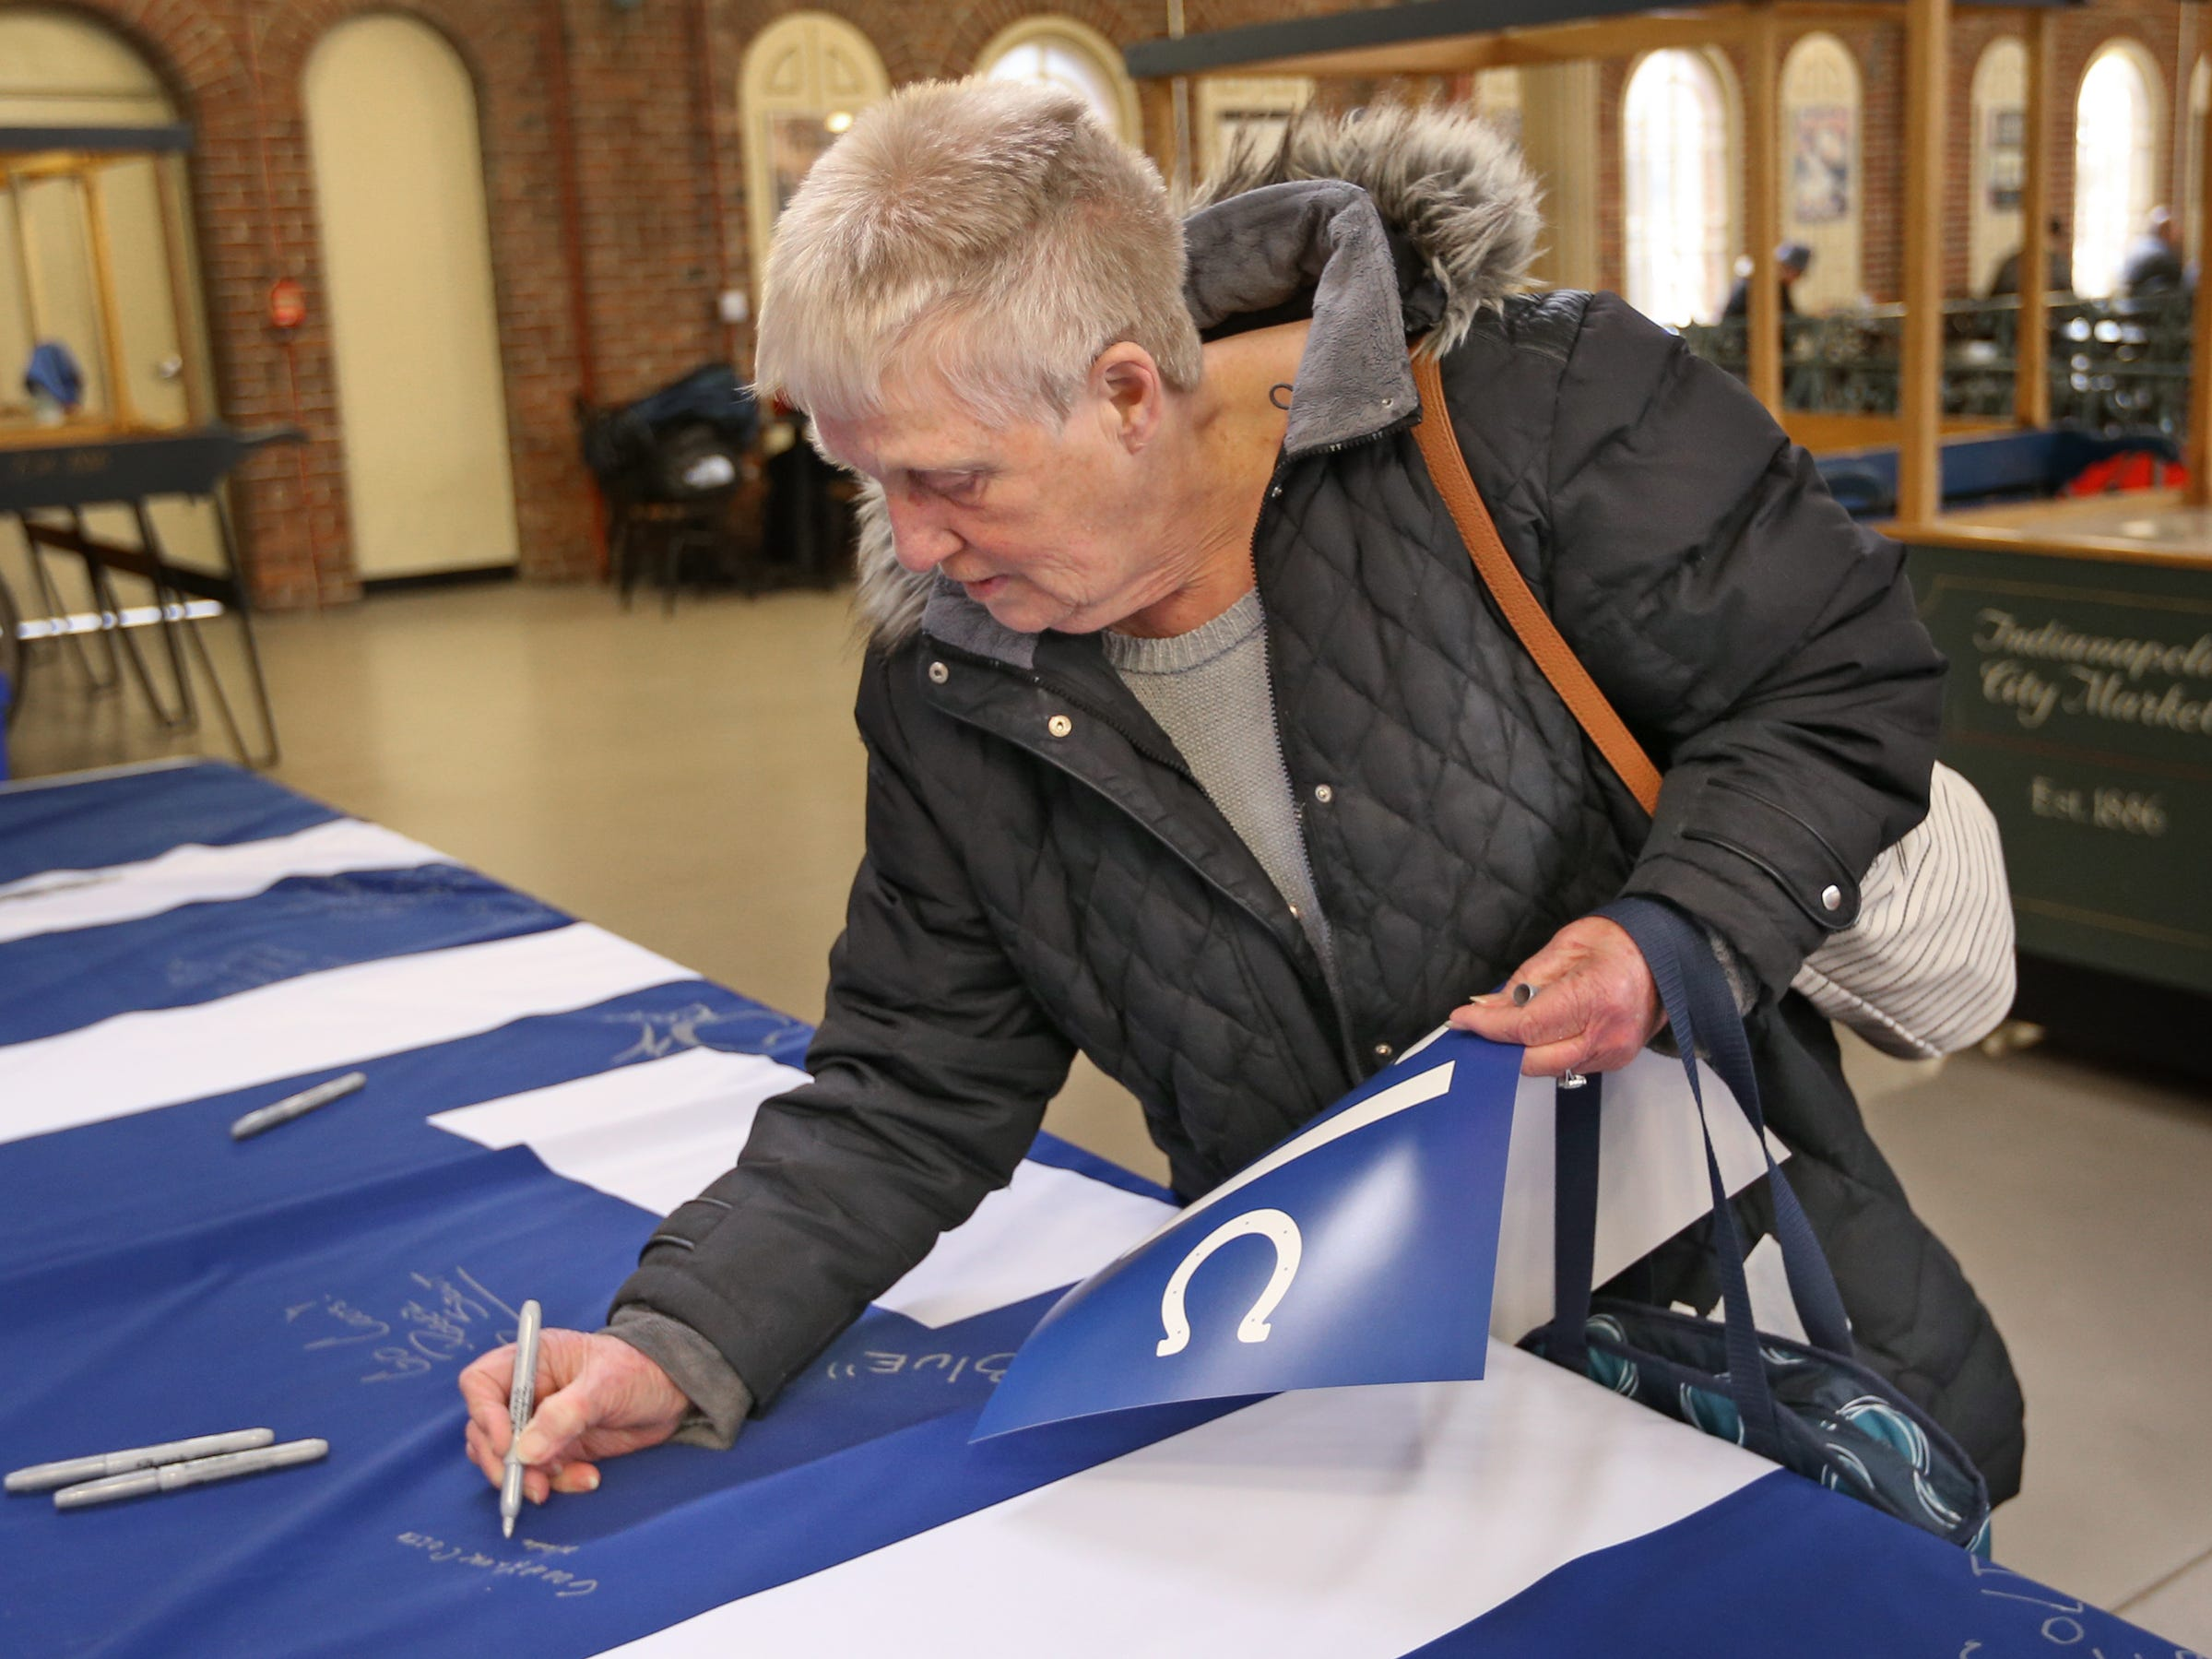 Wanda Pierce joins other fans sign a 1-0 banner for the Colts at City Market, Thursday, Jan. 10, 2019.  The banner will be displayed for the team to see at the airport as they head off to their Kansas City playoff game.